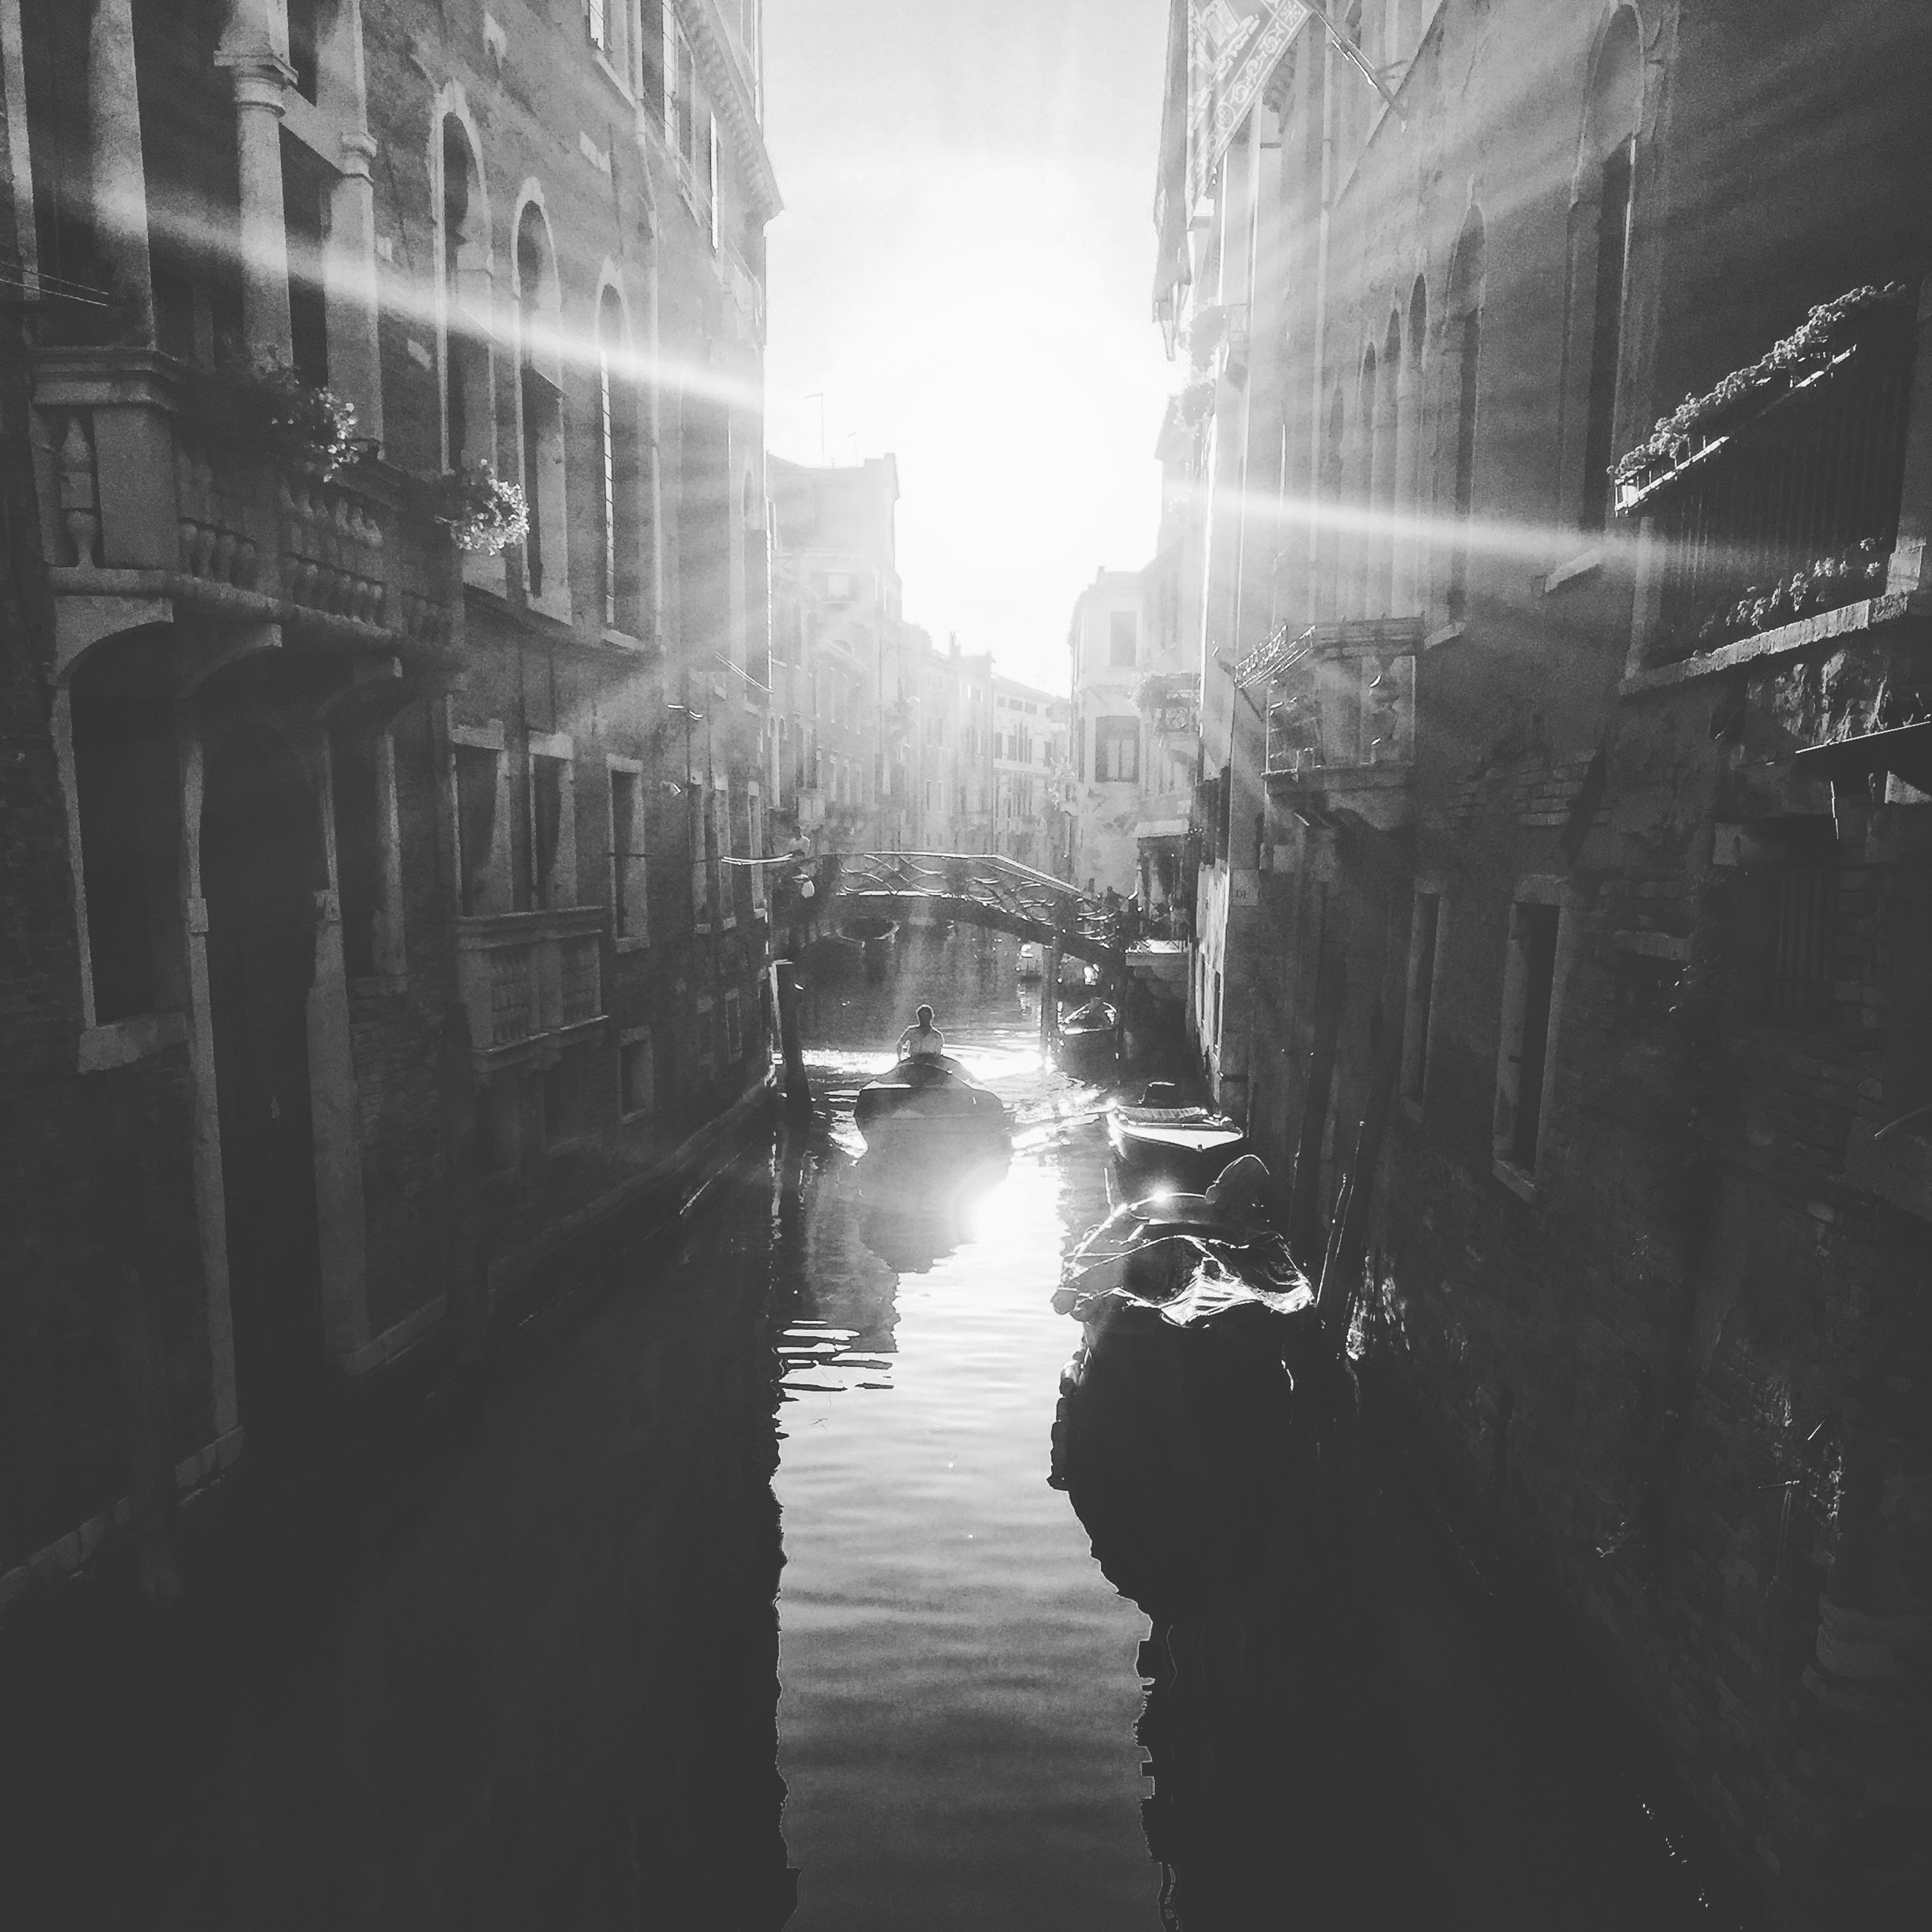 architecture, building exterior, built structure, water, canal, city, reflection, building, waterfront, sunlight, transportation, residential building, sun, incidental people, mode of transport, residential structure, street, wet, lens flare, sky